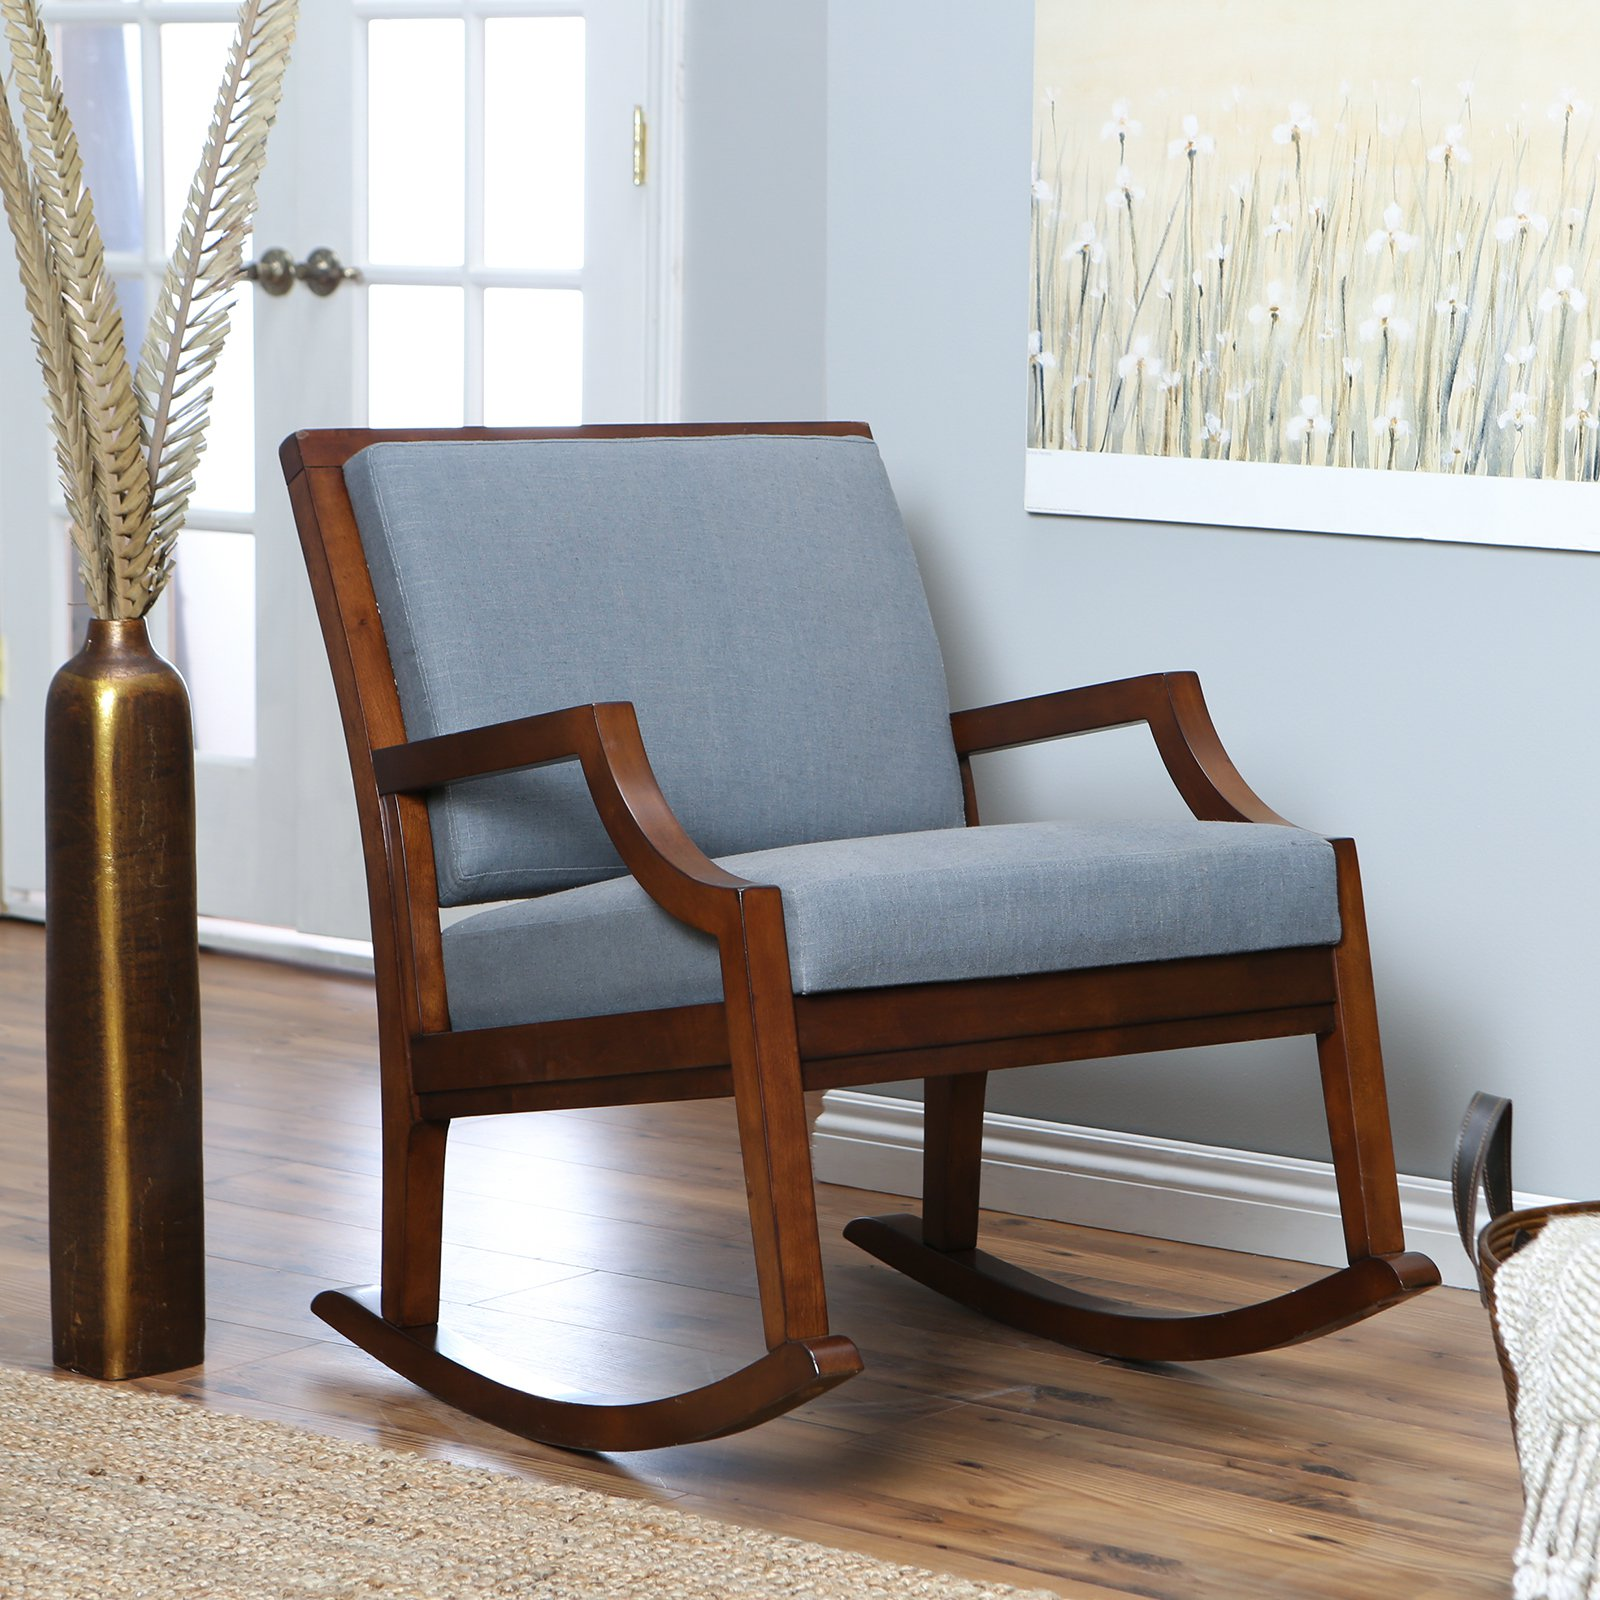 Image of: Nice Upholstered Rocking Chairs